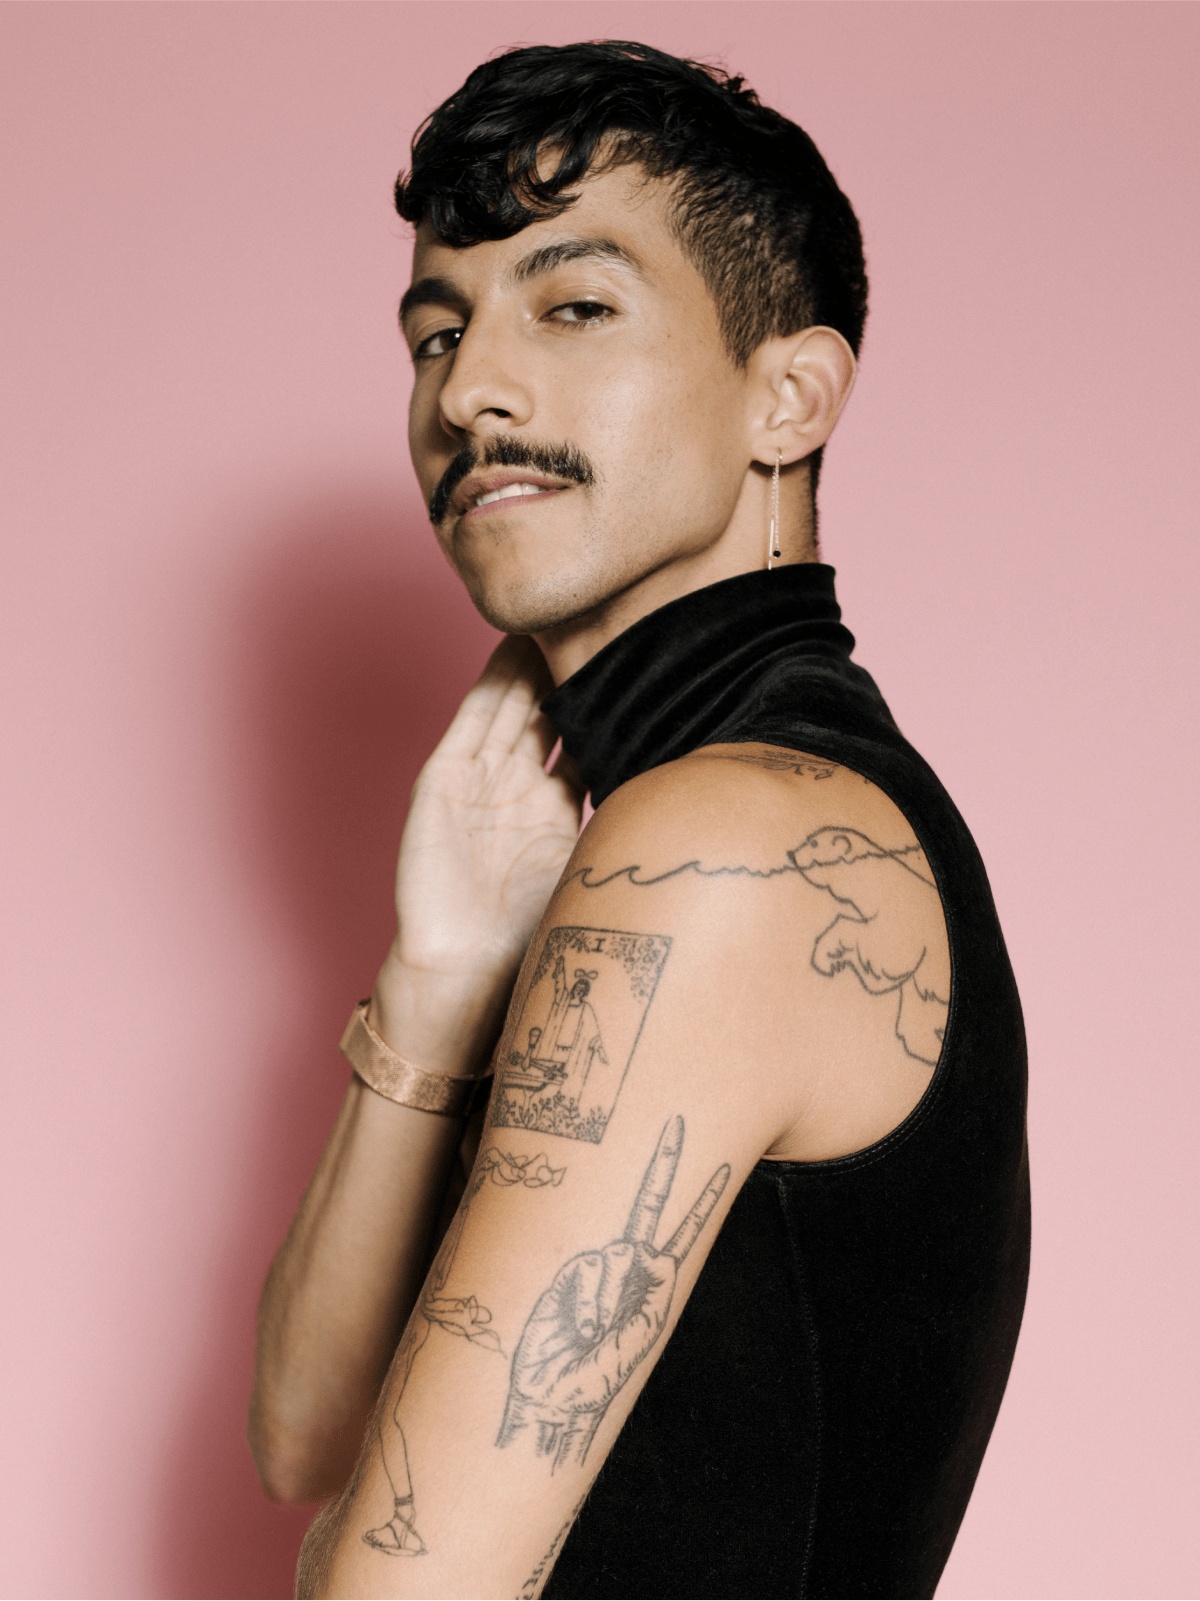 Man wearing sleeveless turtleneck and earings showing his arm with tattoos